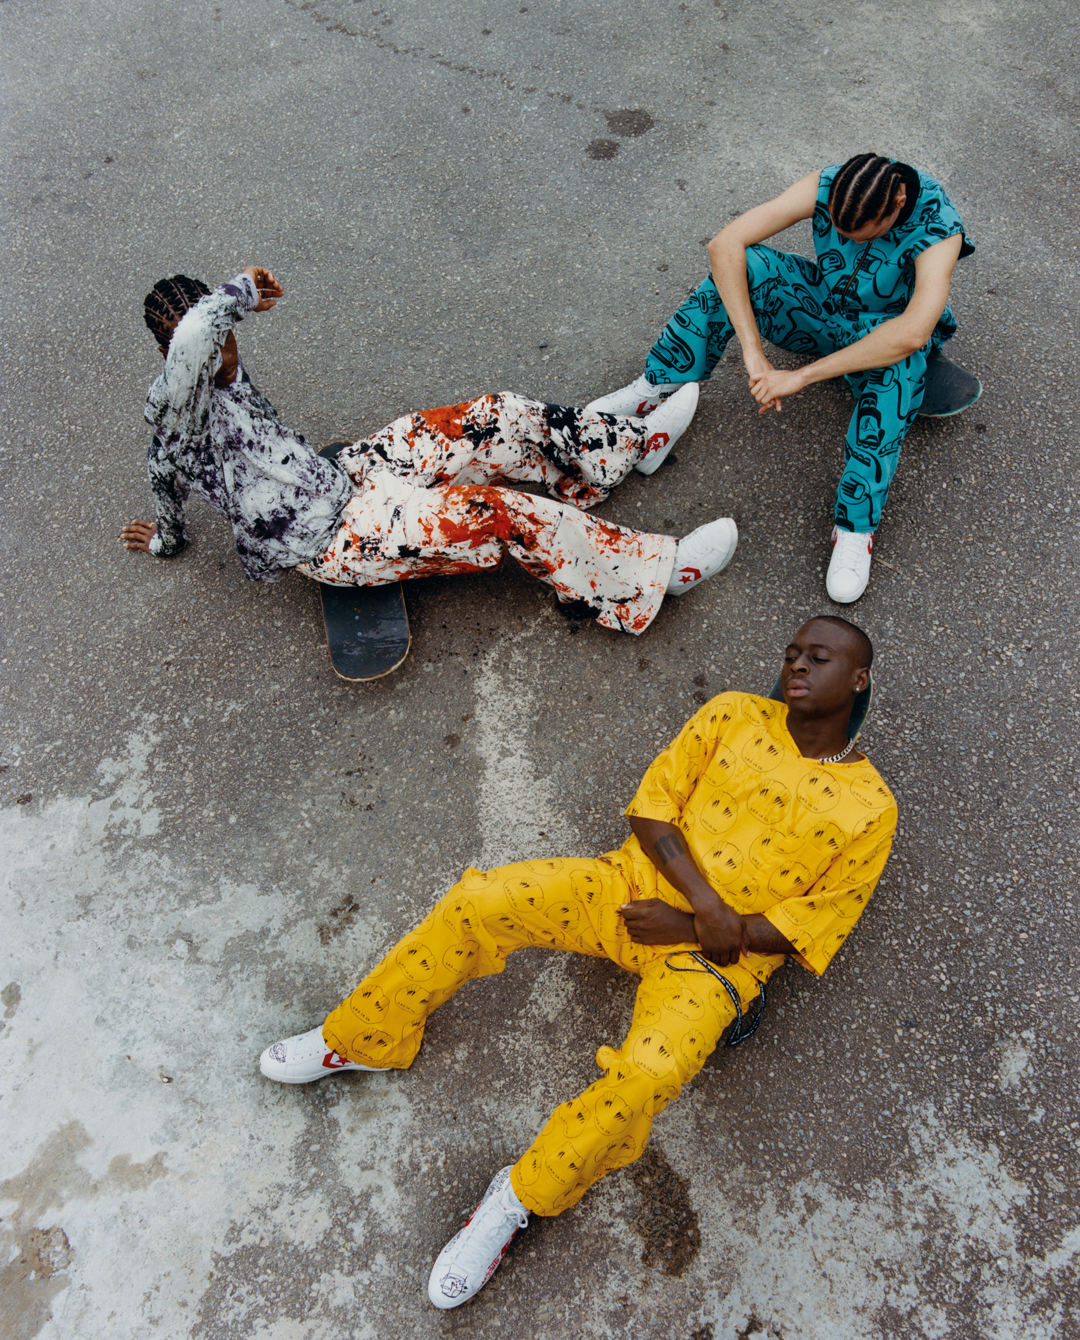 Three men on skateboards, photographed from above